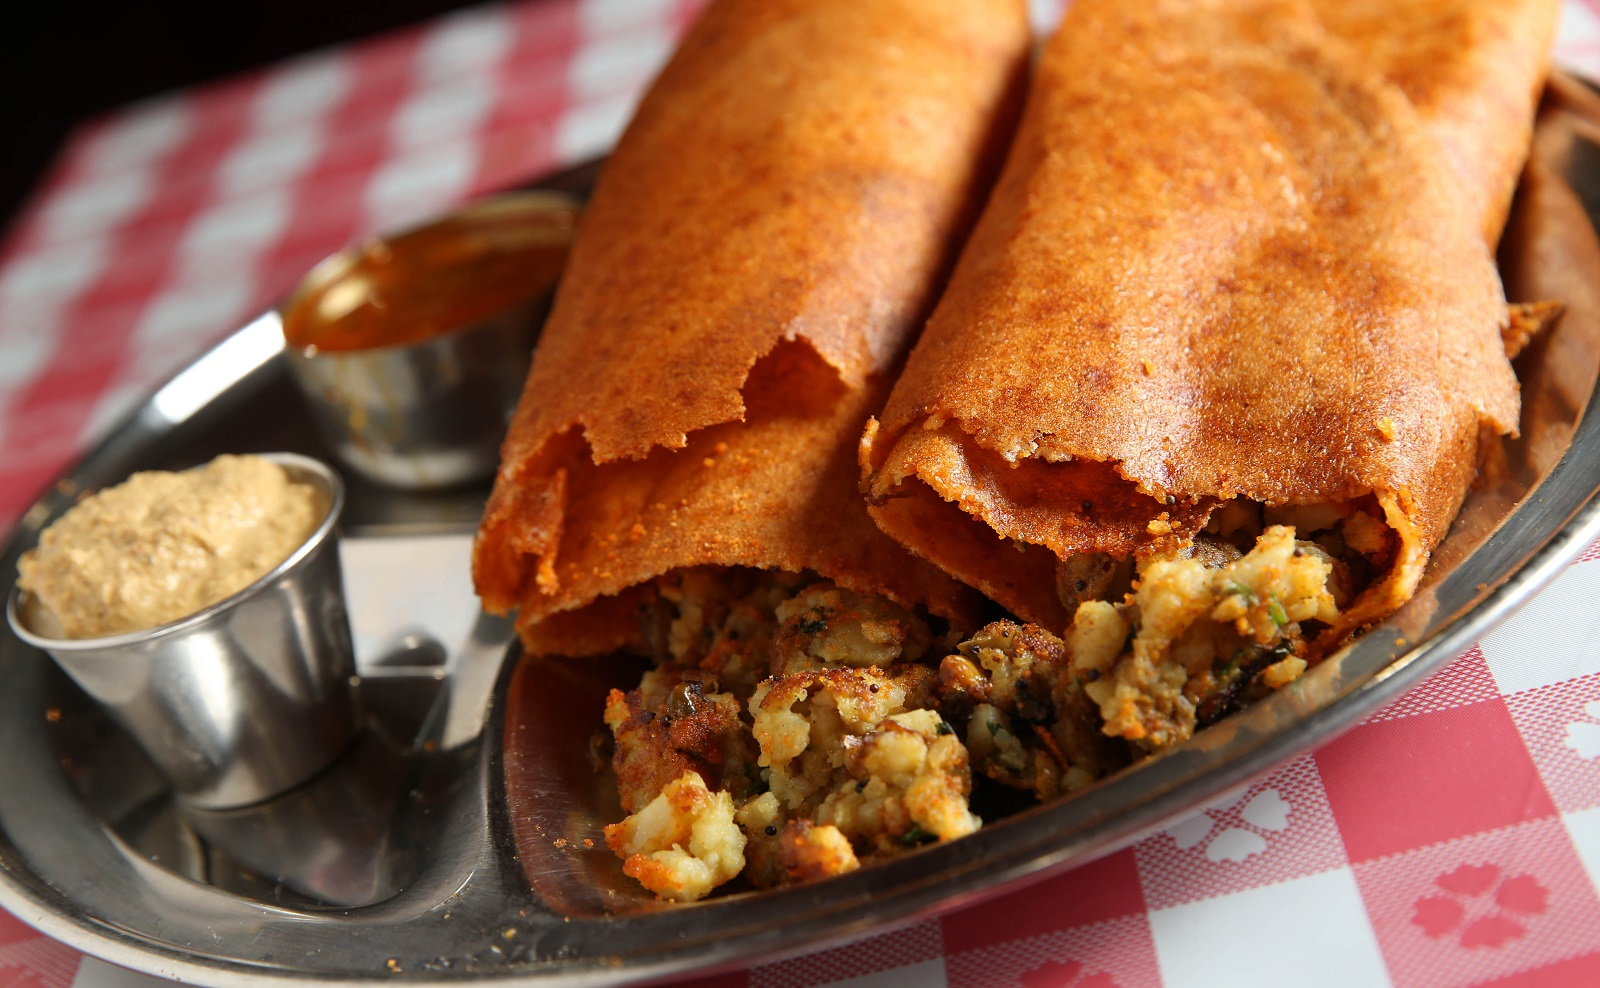 Chennai Express' Gunpowder Masala Dosa is one of Andrew Galarneau's featured spicy foods in his centerfold in The Buffalo News on Feb. 22, 2017. (Sharon Cantillon/Buffalo News)